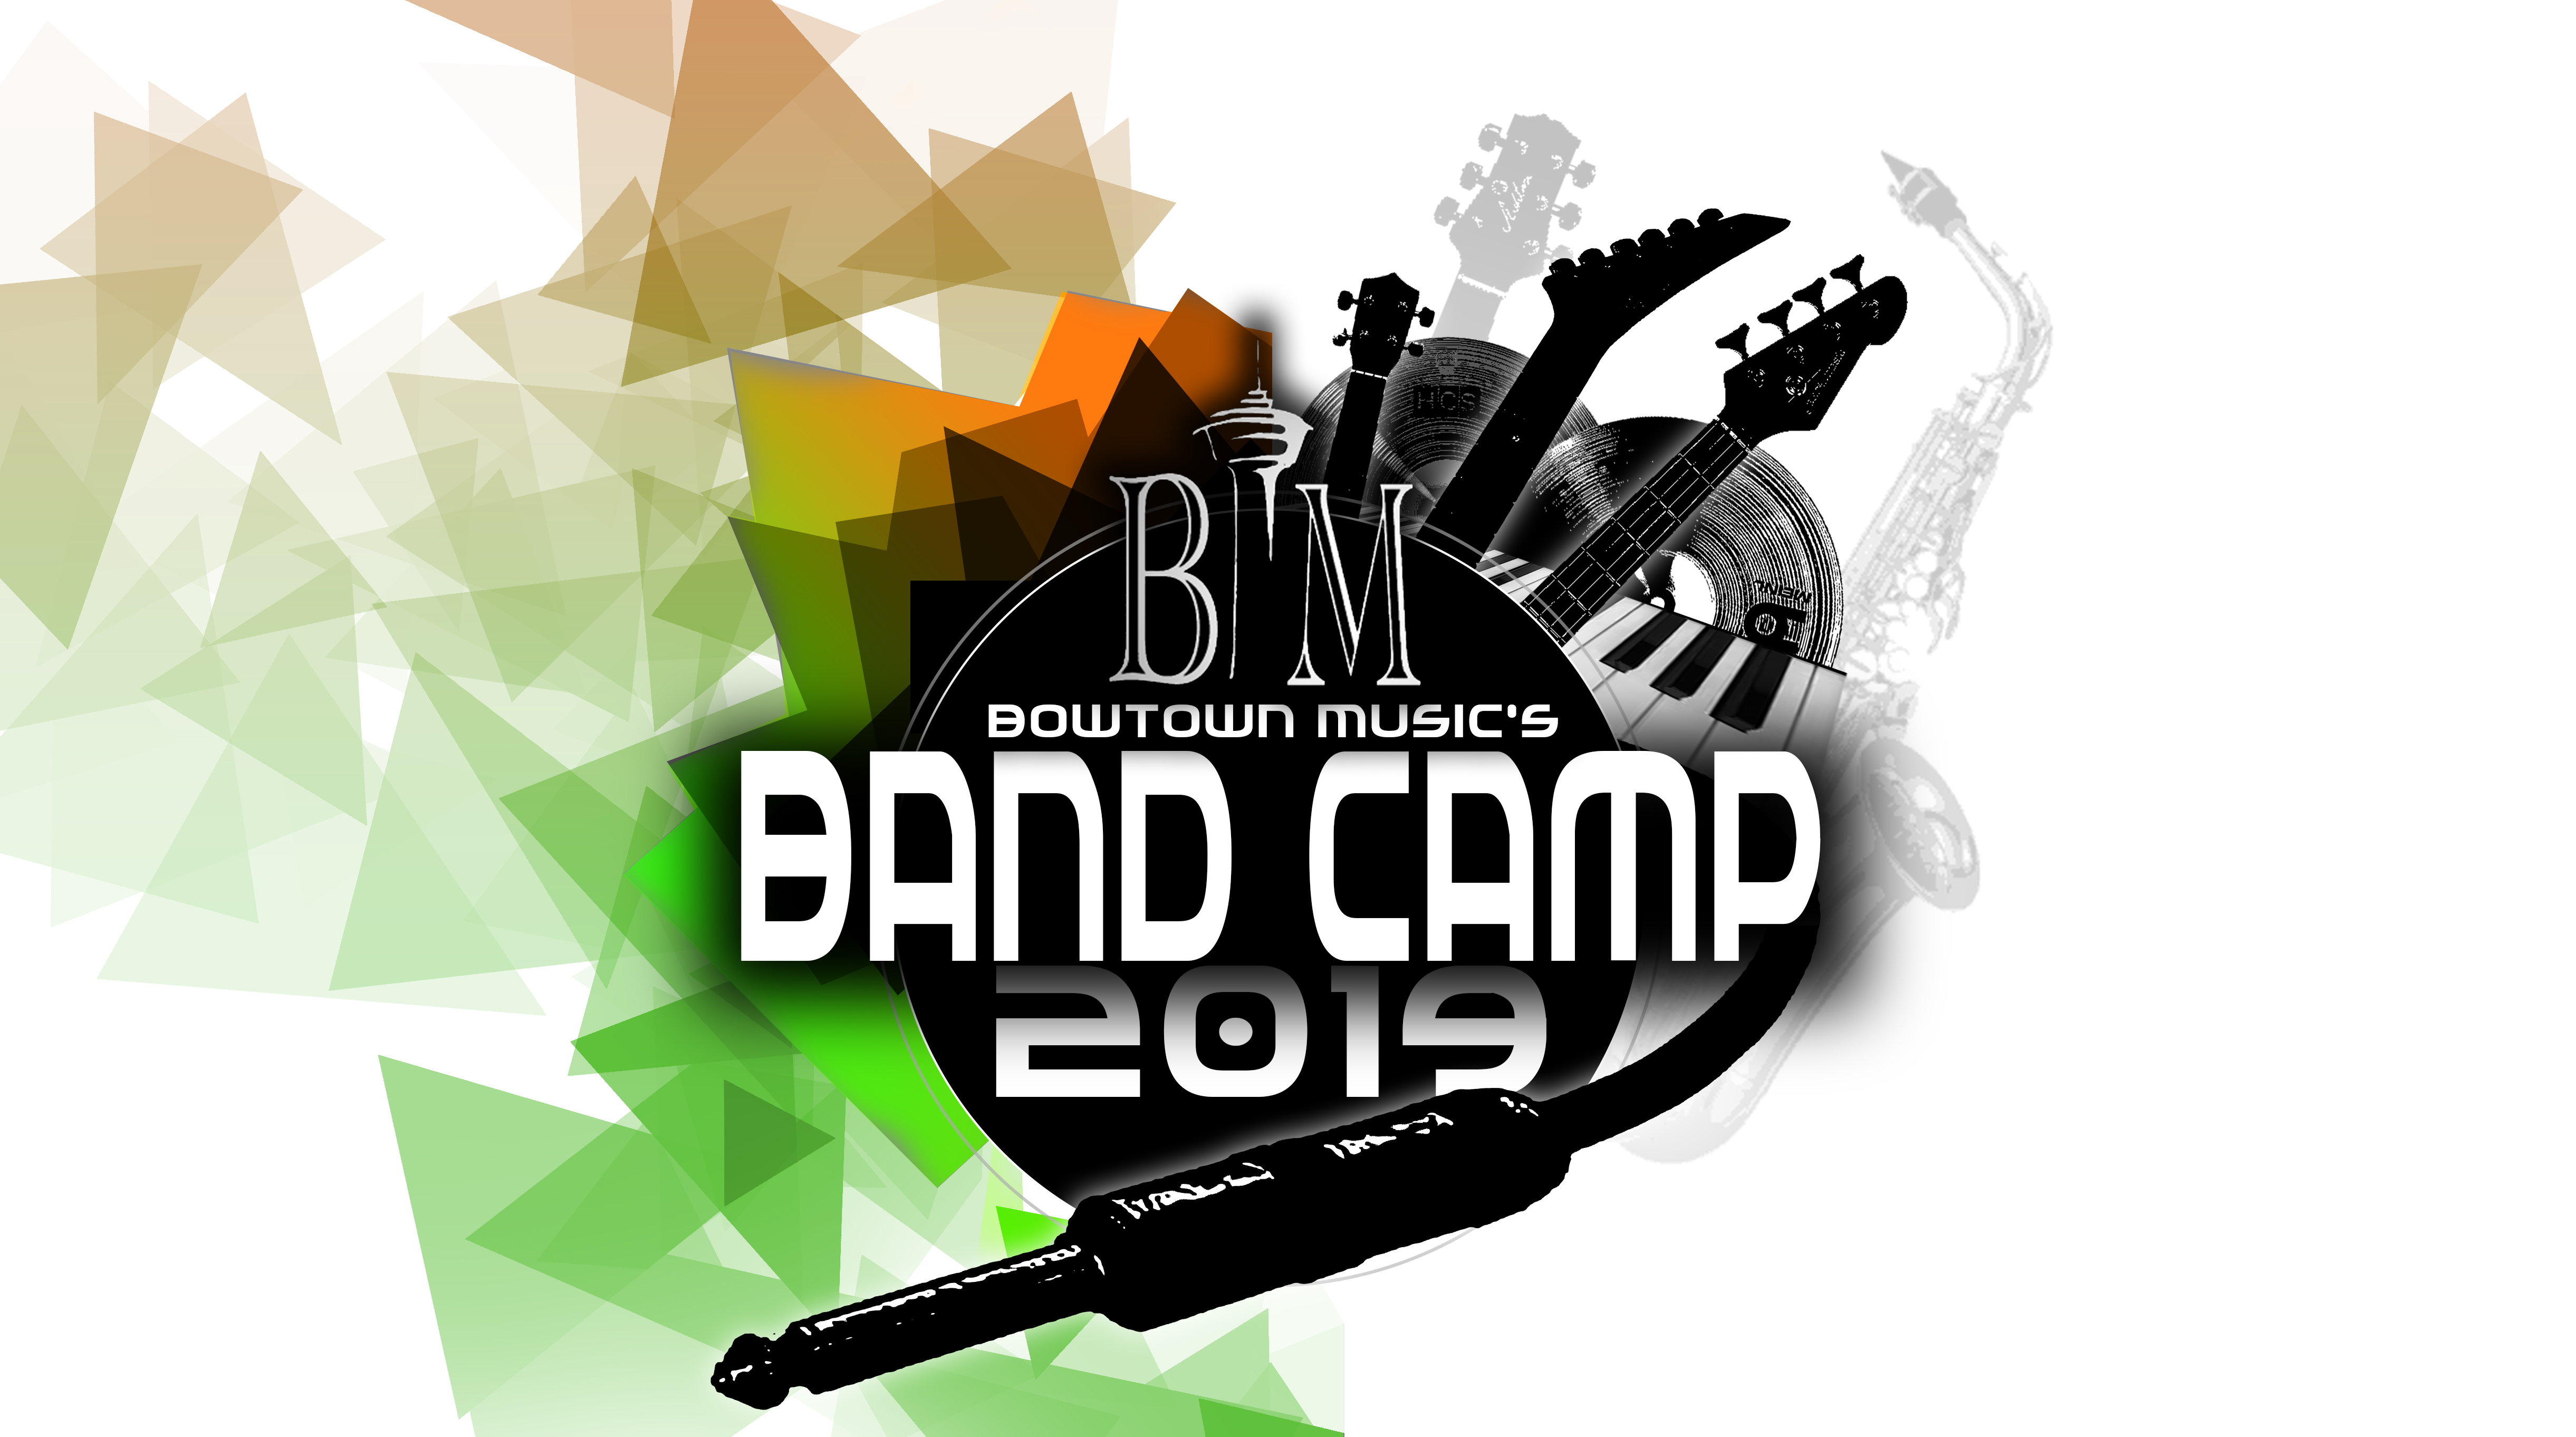 Band Camp - Bowtown Music